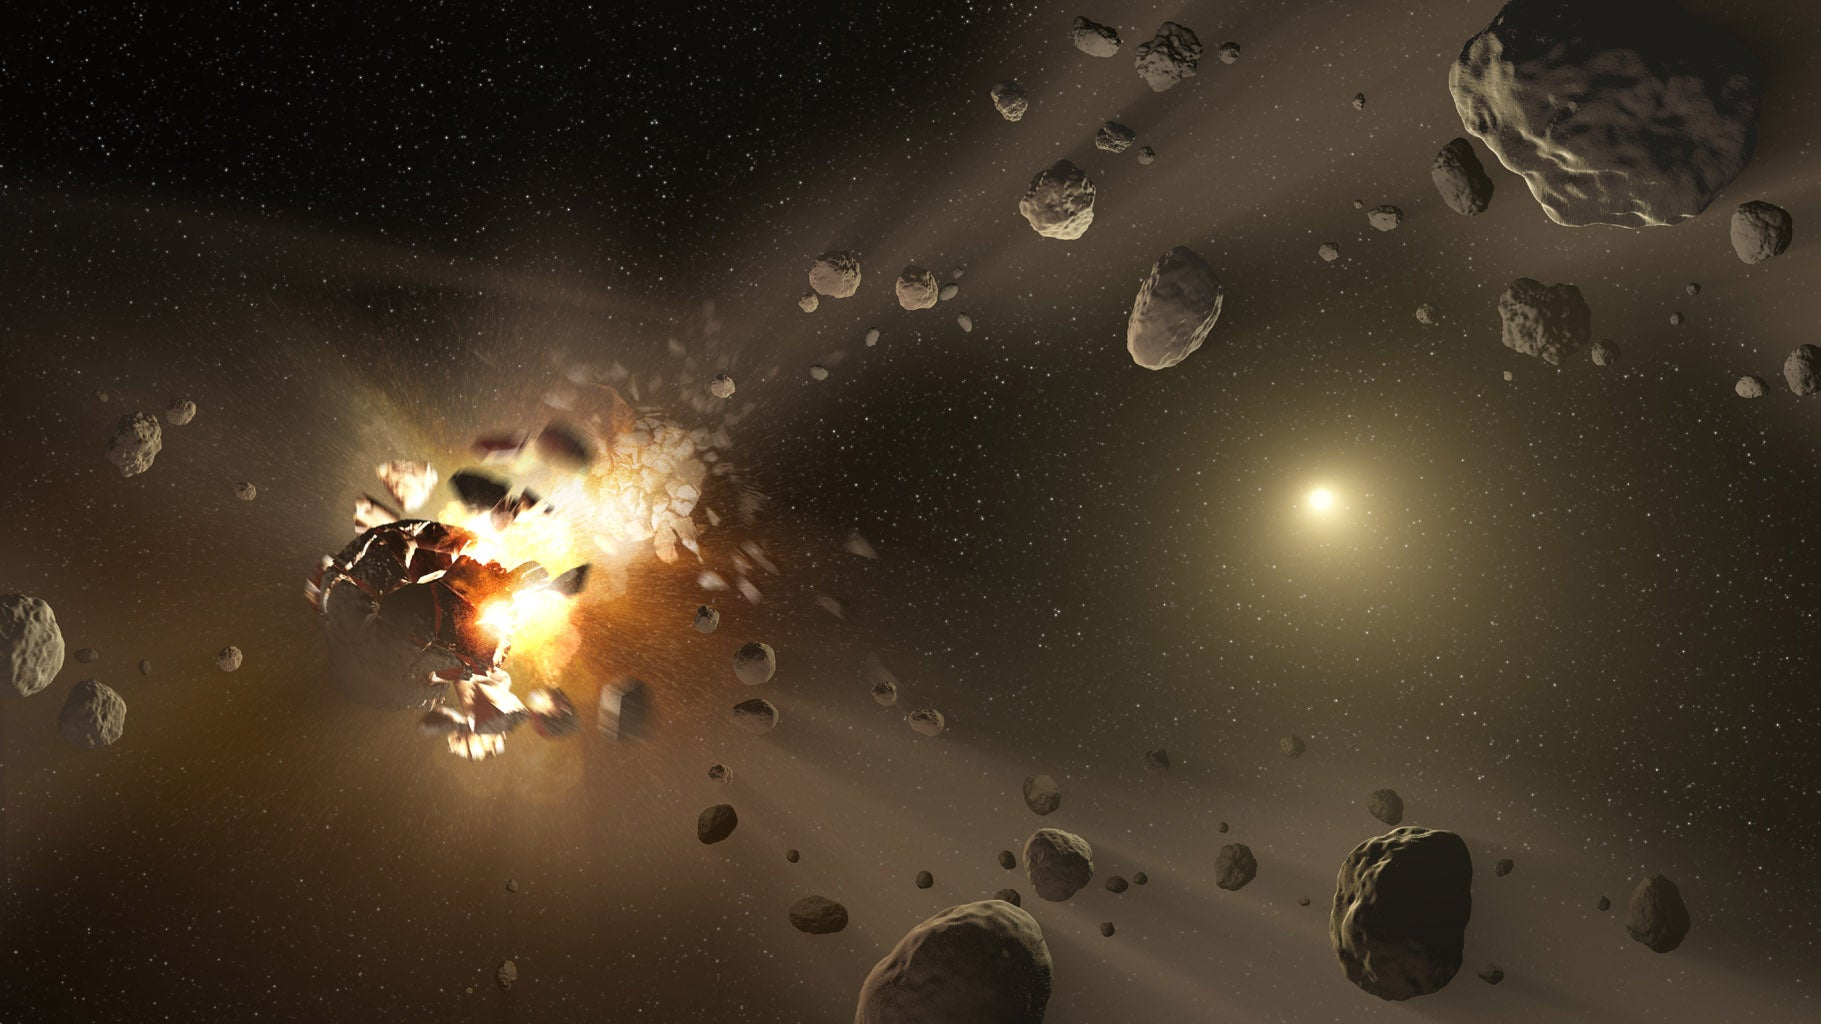 An Asteroid Will Pass Earth So Closely Next Month That We Could See It in the Sky